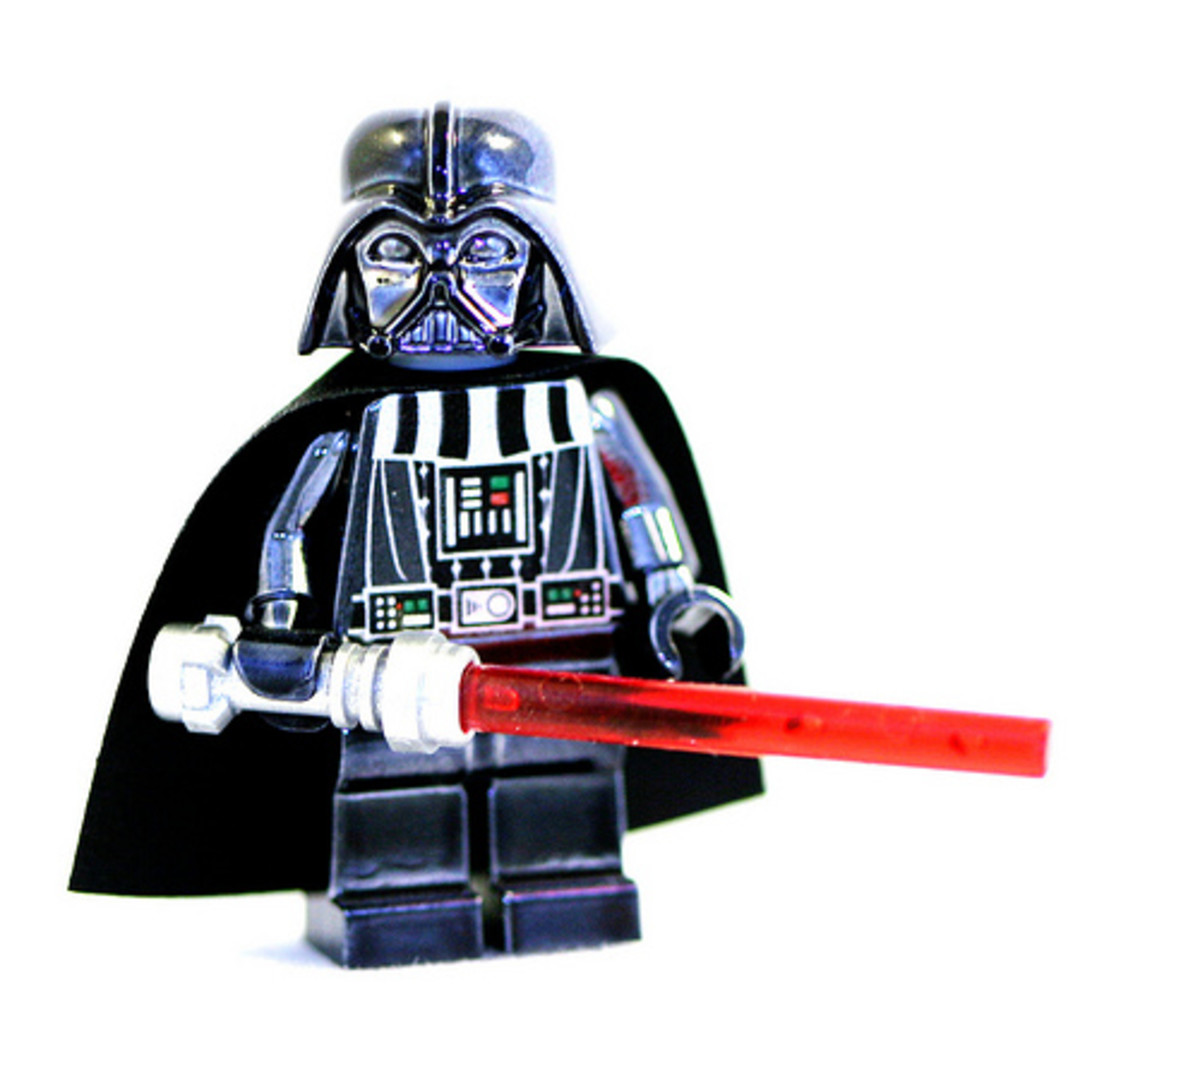 Lego Star Wars Darth Vader Chrome 4547551 Minifigure